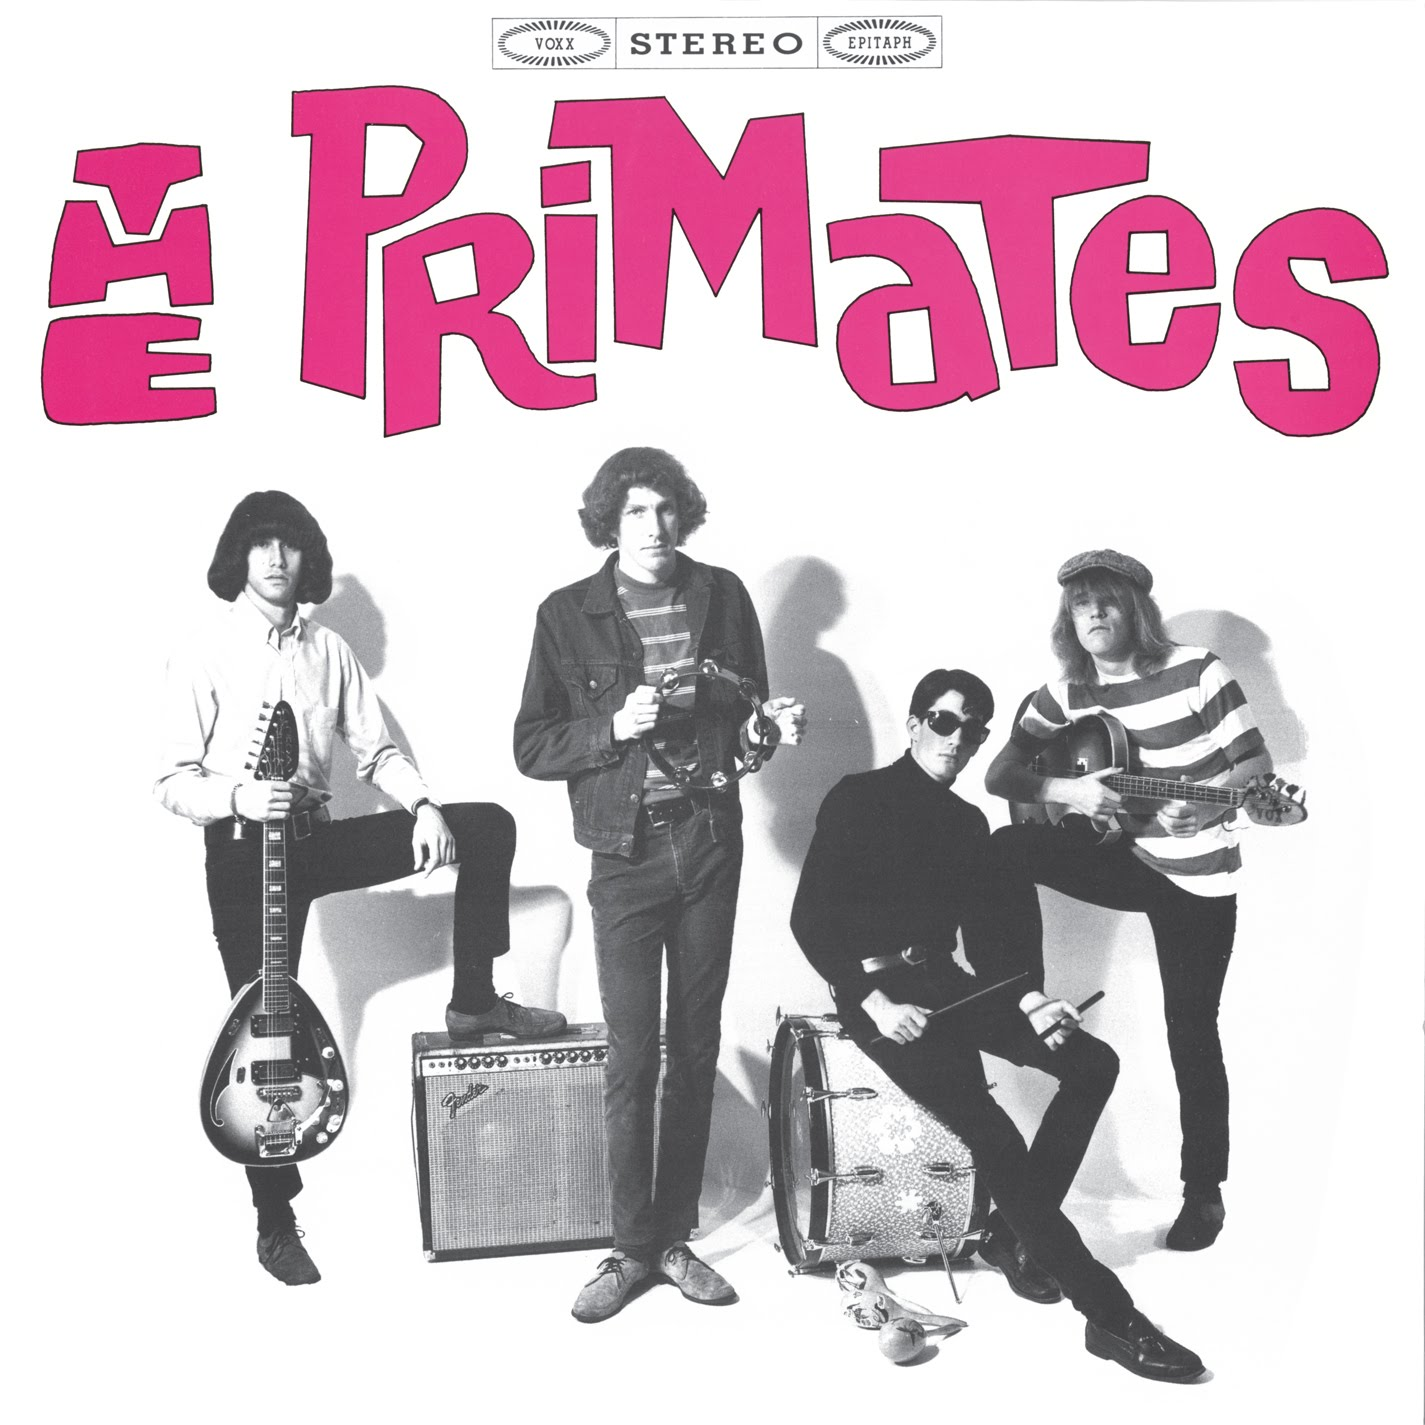 Power Pop Lovers The Primates We Are The Primates